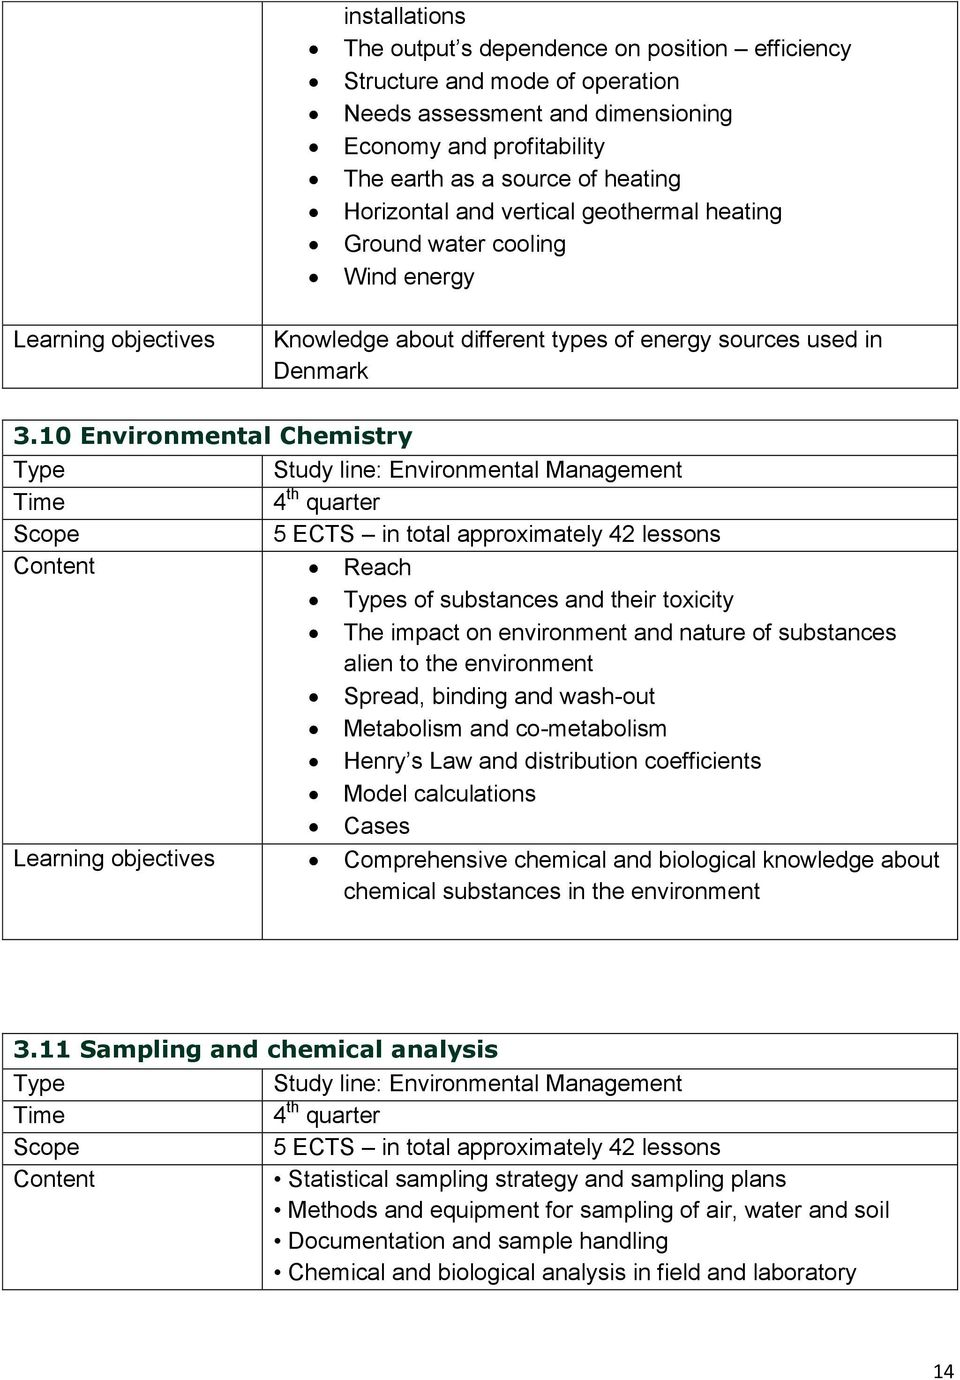 10 Environmental Chemistry Study line: Environmental Management Time 4 th quarter Scope 5 ECTS in total approximately 42 lessons Content Reach s of substances and their toxicity The impact on